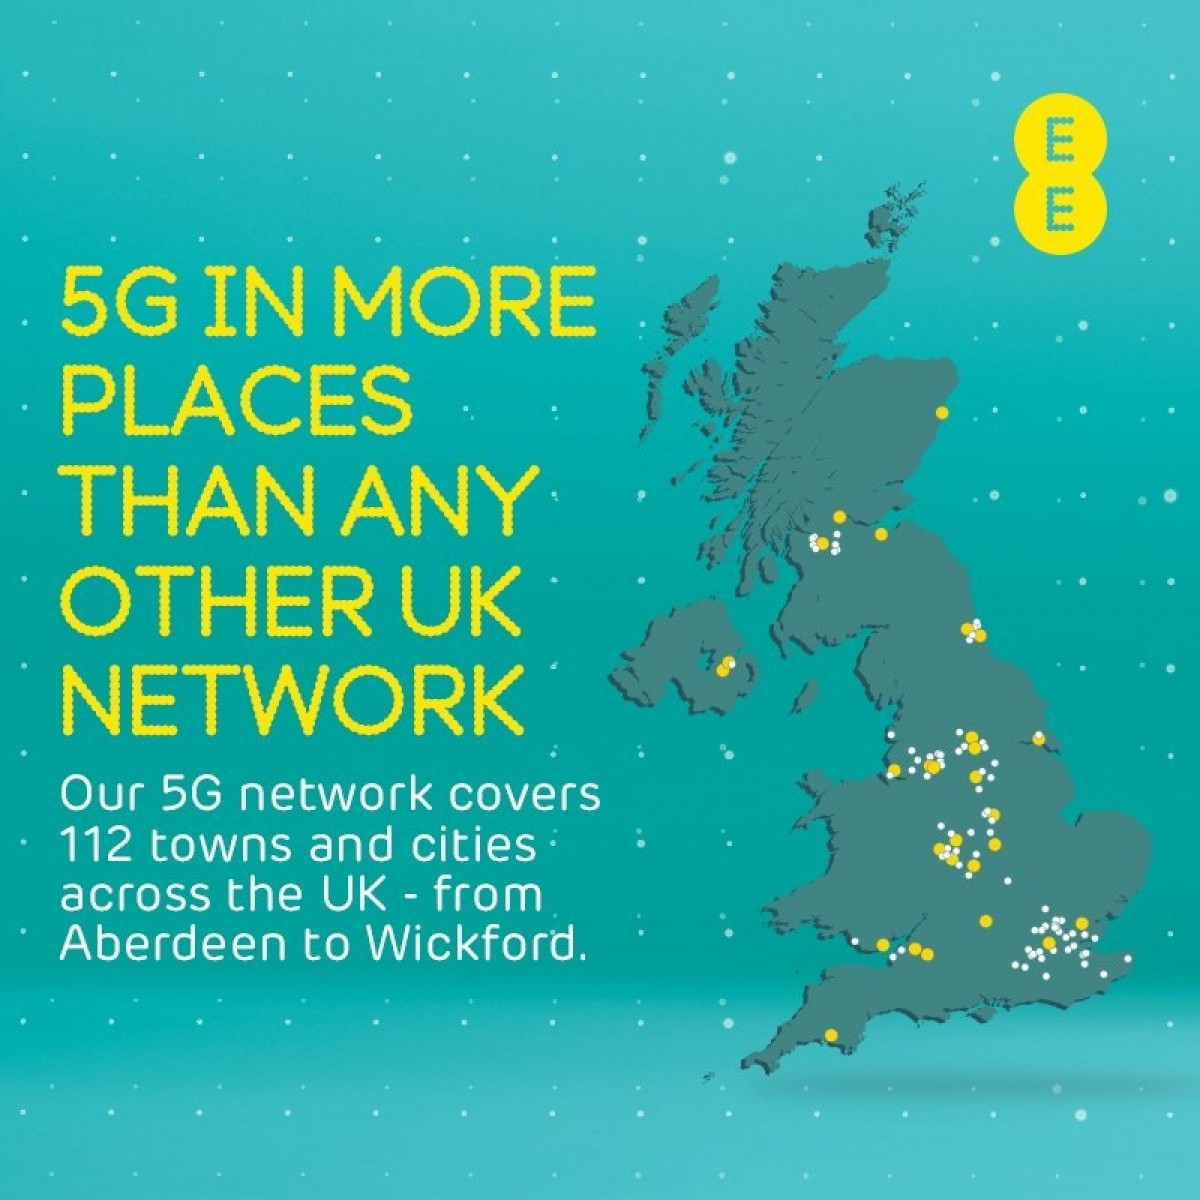 EE brings 5G to 12 more locations ahead of iPhone 12 launch